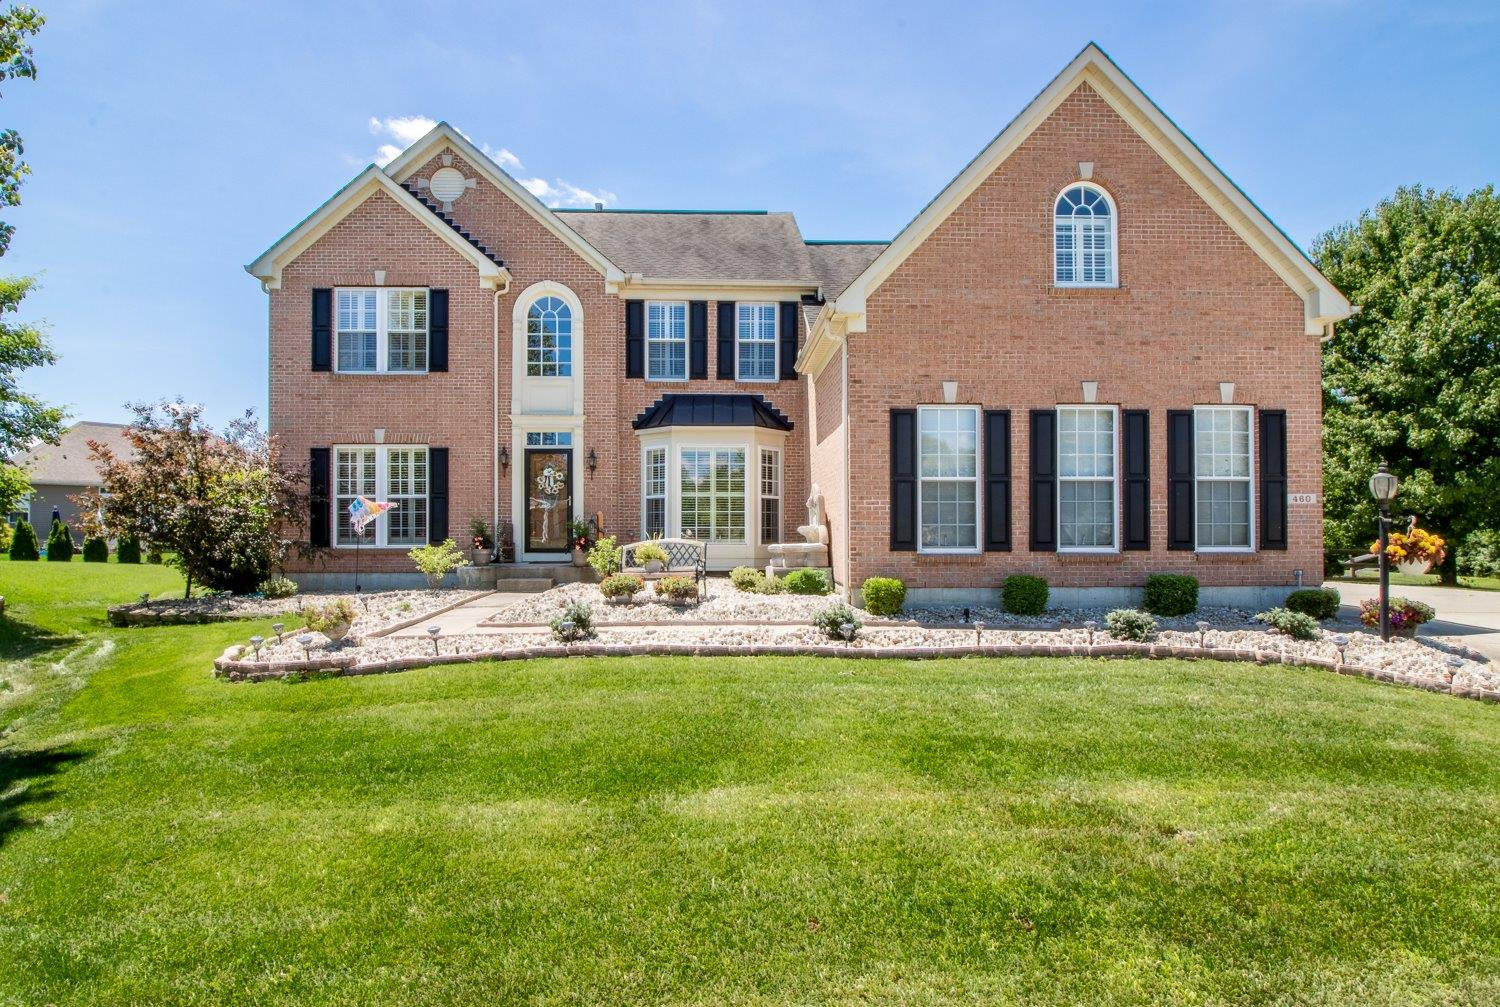 Property for sale at 460 Countryside Drive, Lebanon,  Ohio 45036